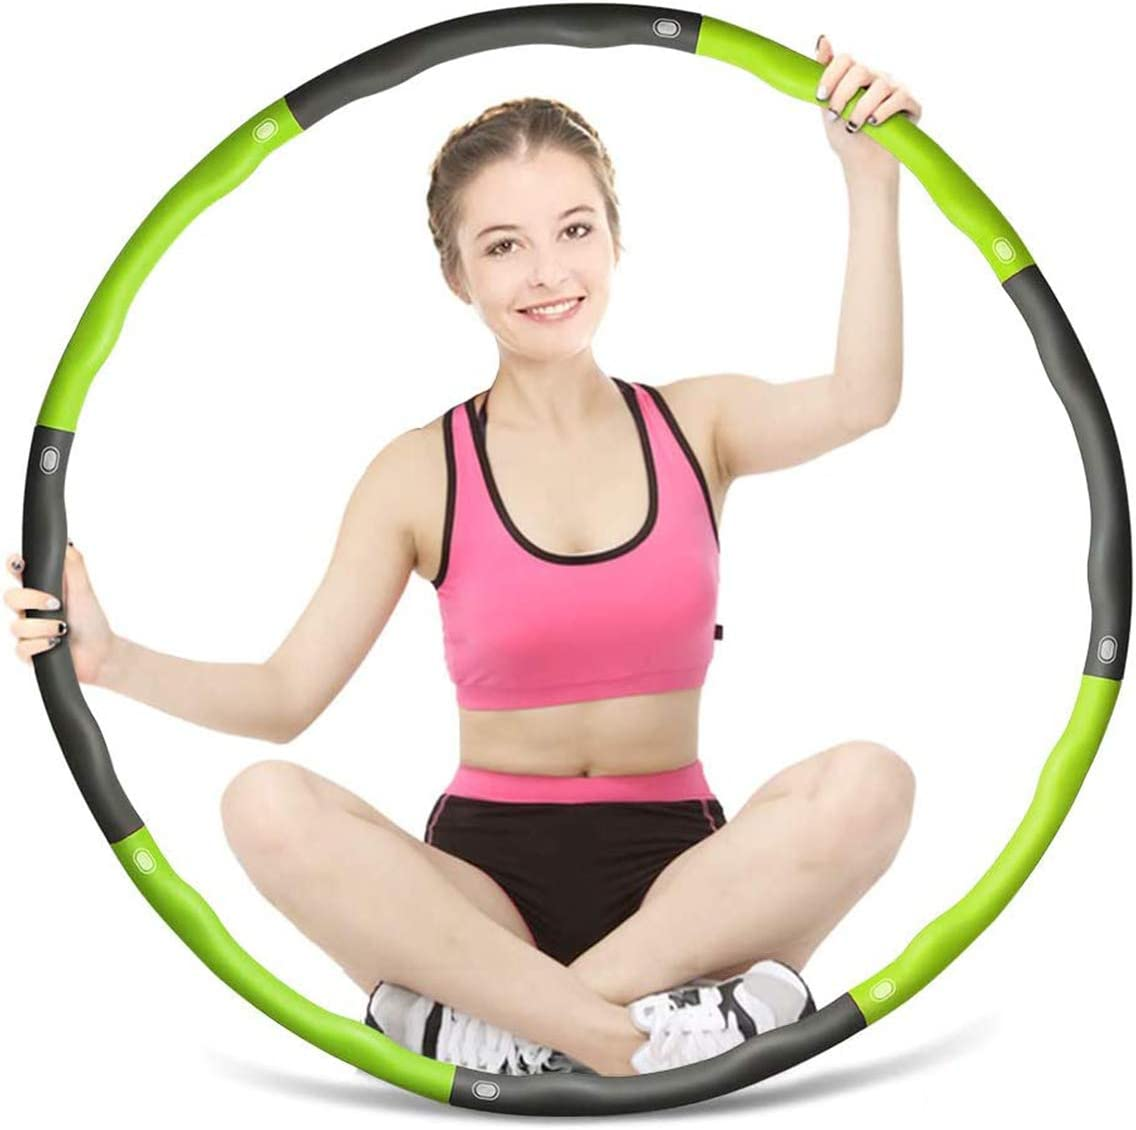 SourceDIY Weighted Hula Hoop for Adults and Teenagers GYM or office Body Toning /& Weight Loss at home Large Fitness Foam Padded Exercise Hoola Hoops for Beginners to Intermediate Level